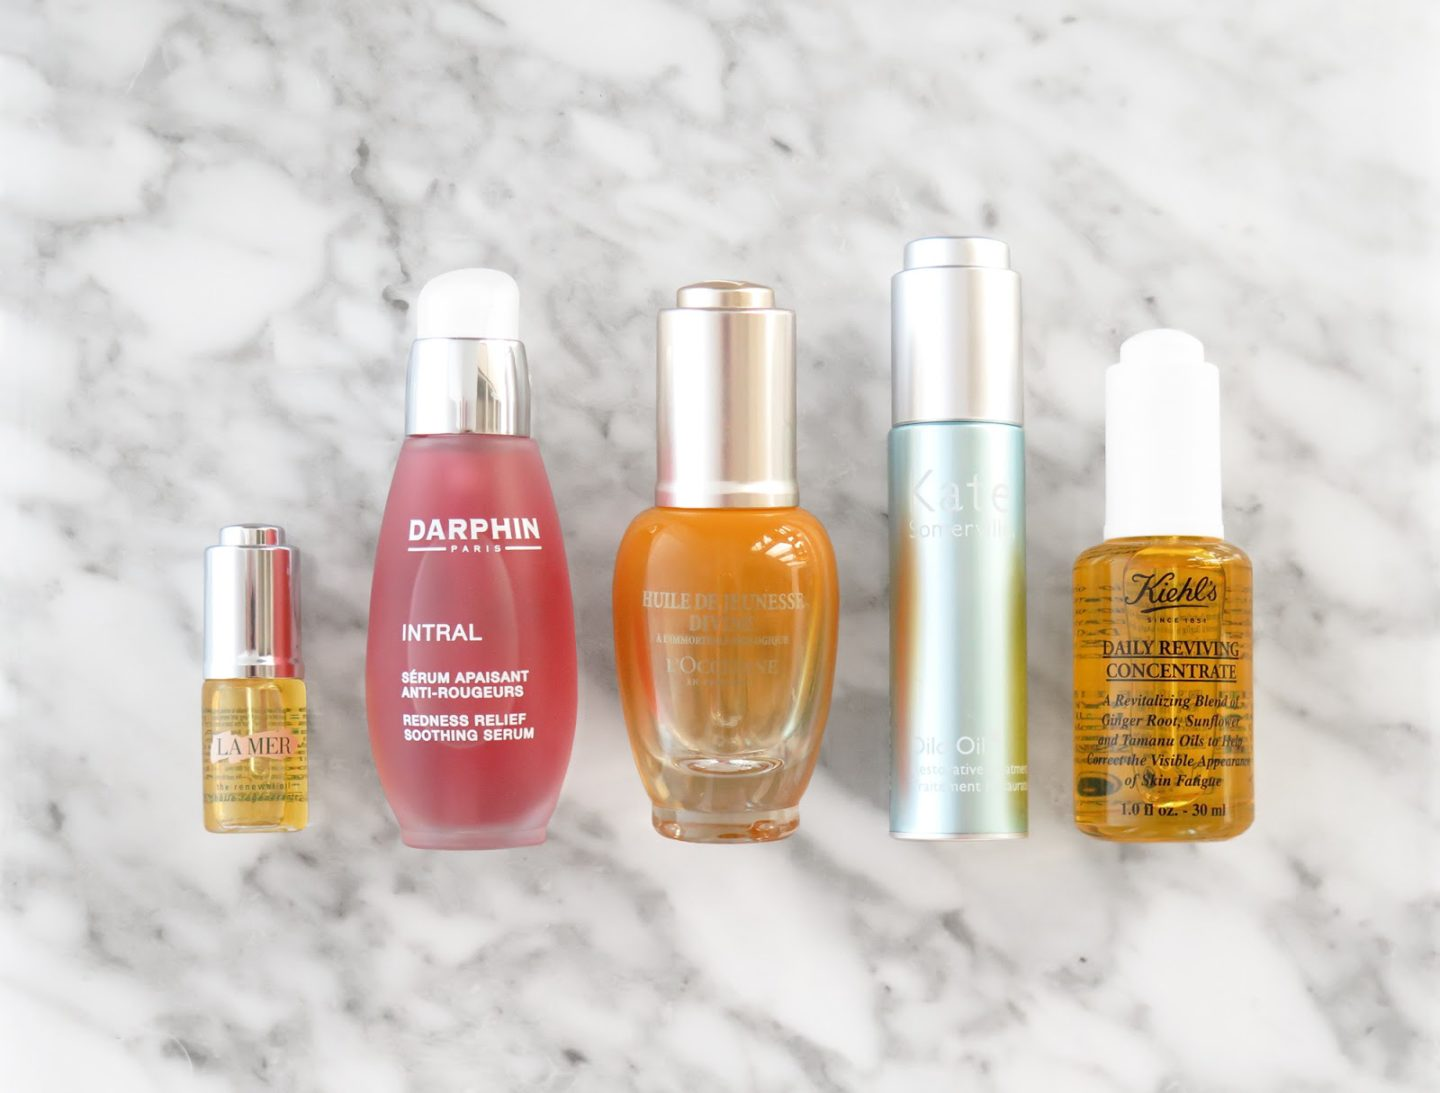 The Beauty Look Book - Oils for Sensitive Skin La Mer, Darphin, Kate Somerville, Kiehl's